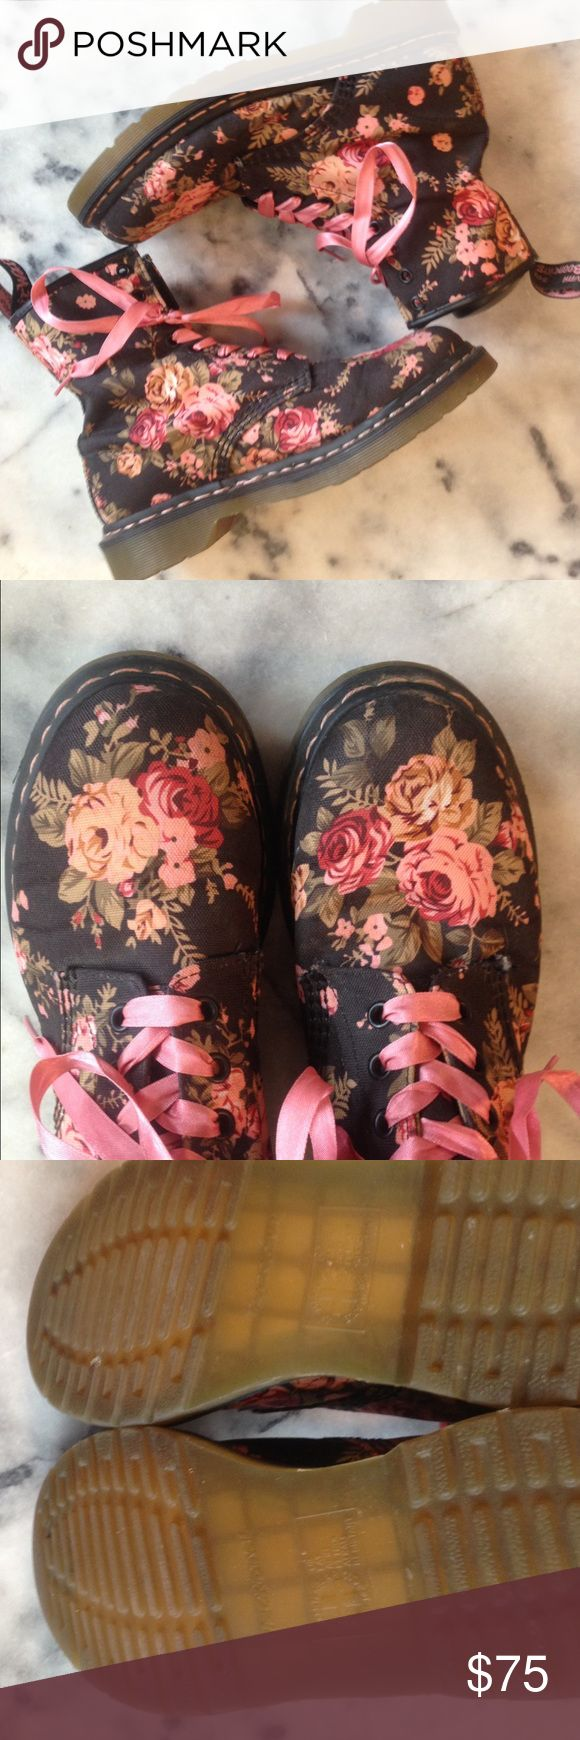 Doc Martens Floral Canvas Docs One pair of Floral Doc Martens, Size 'womens' US8 EU39 UK6, worn once. Pink ribbon laces included, but removable. Open to offers and trades! Doc Martens Shoes